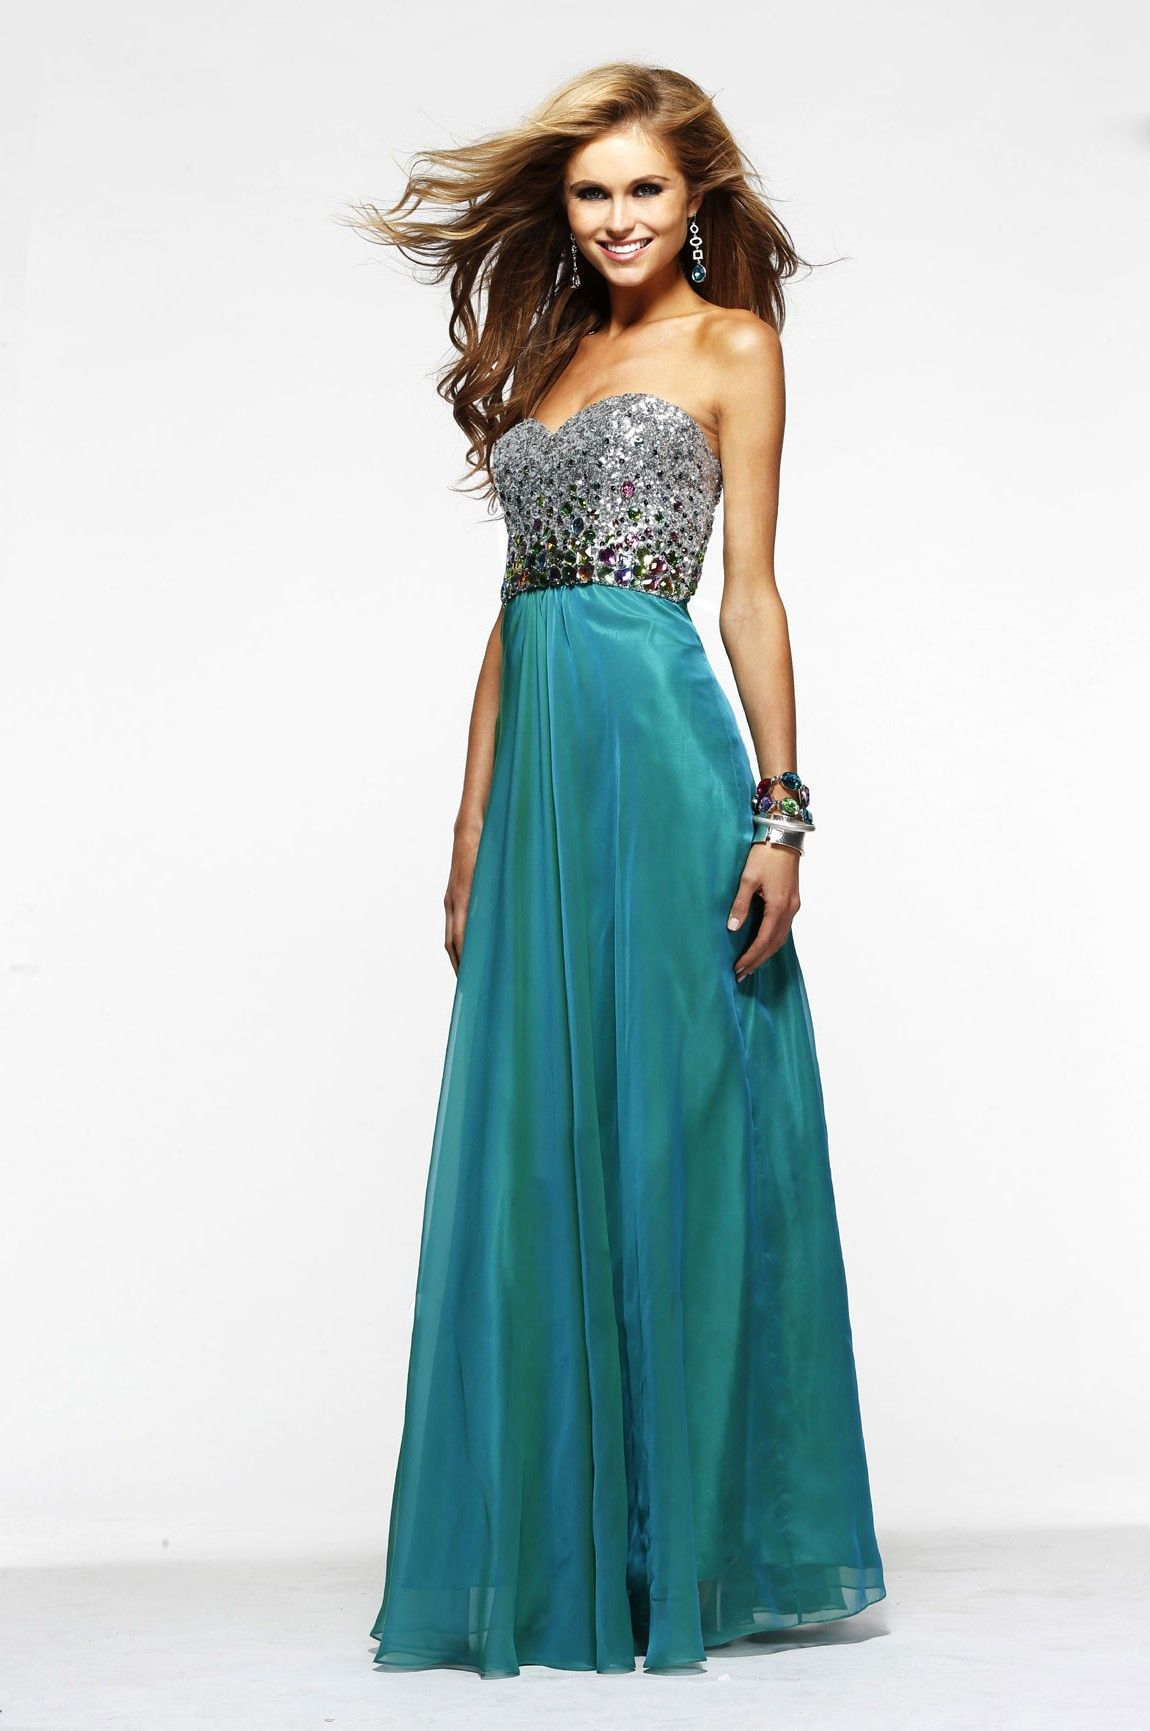 Teal Dresses for Wedding Guest - Women\'s Dresses for Wedding Guest ...